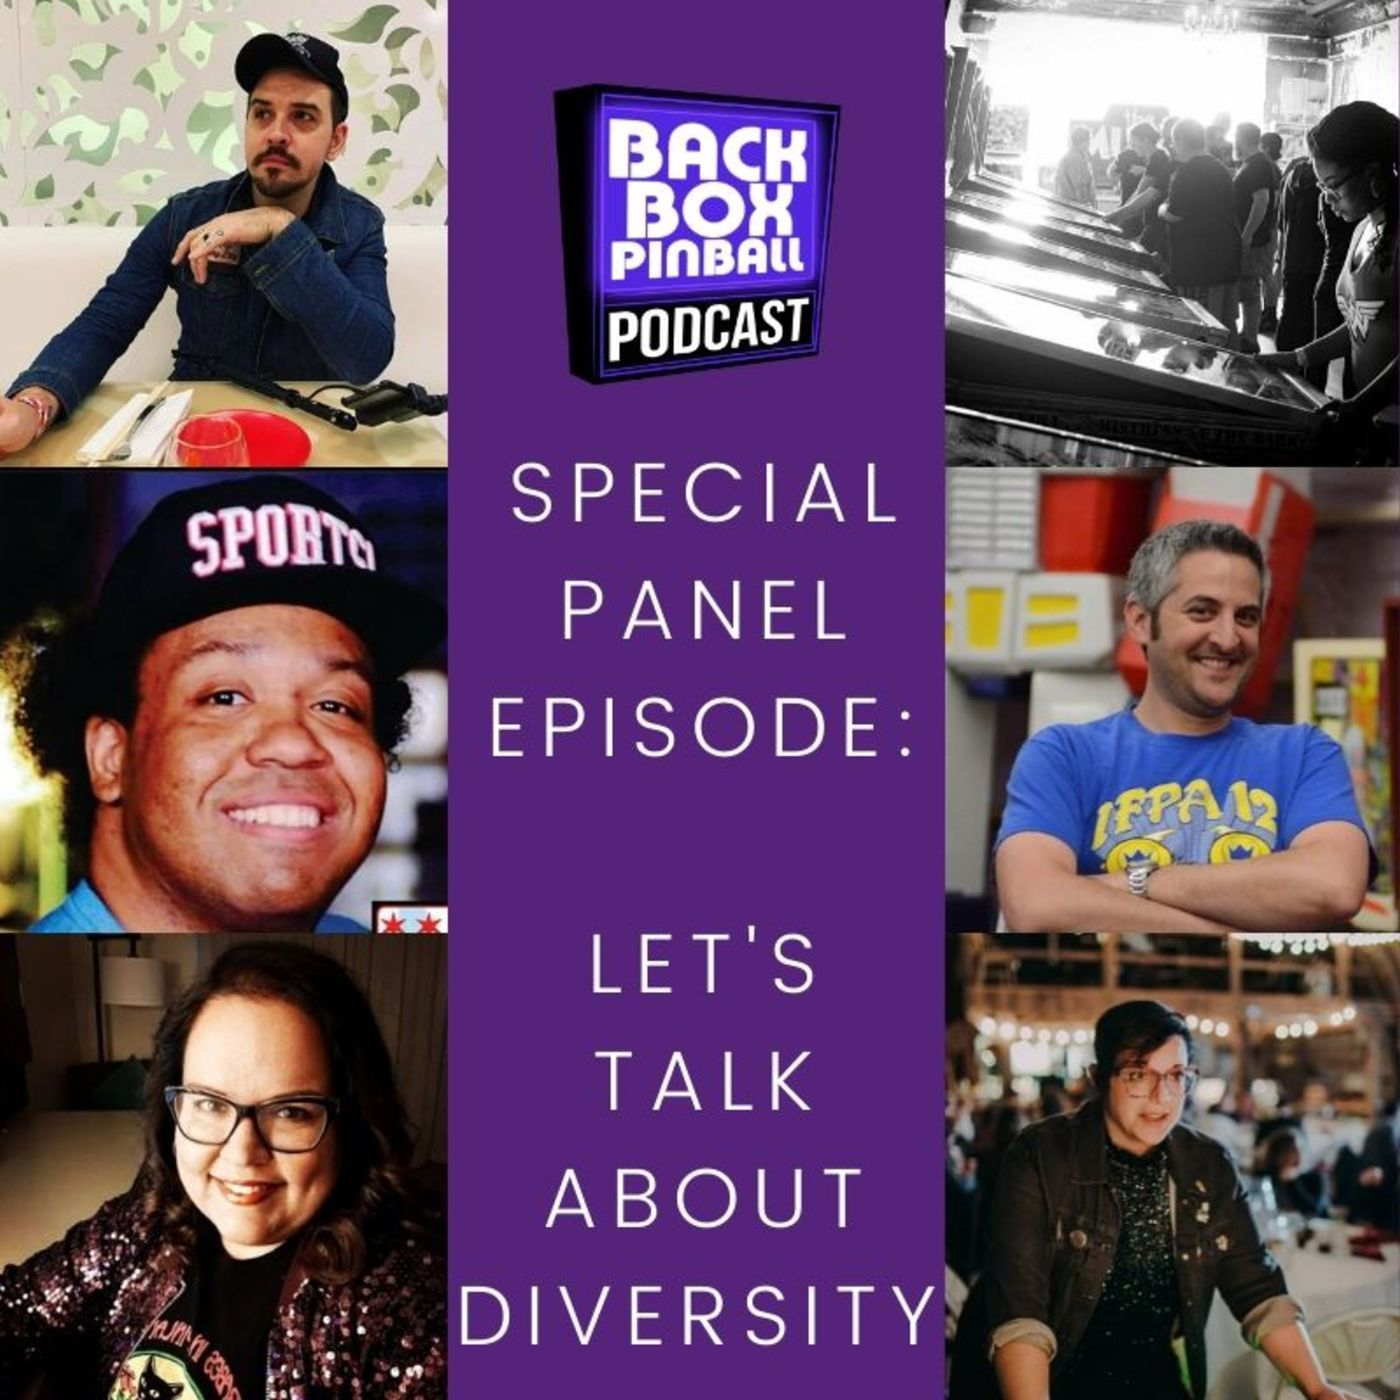 A special Backbox Pinball Podcast: Diversity Panel